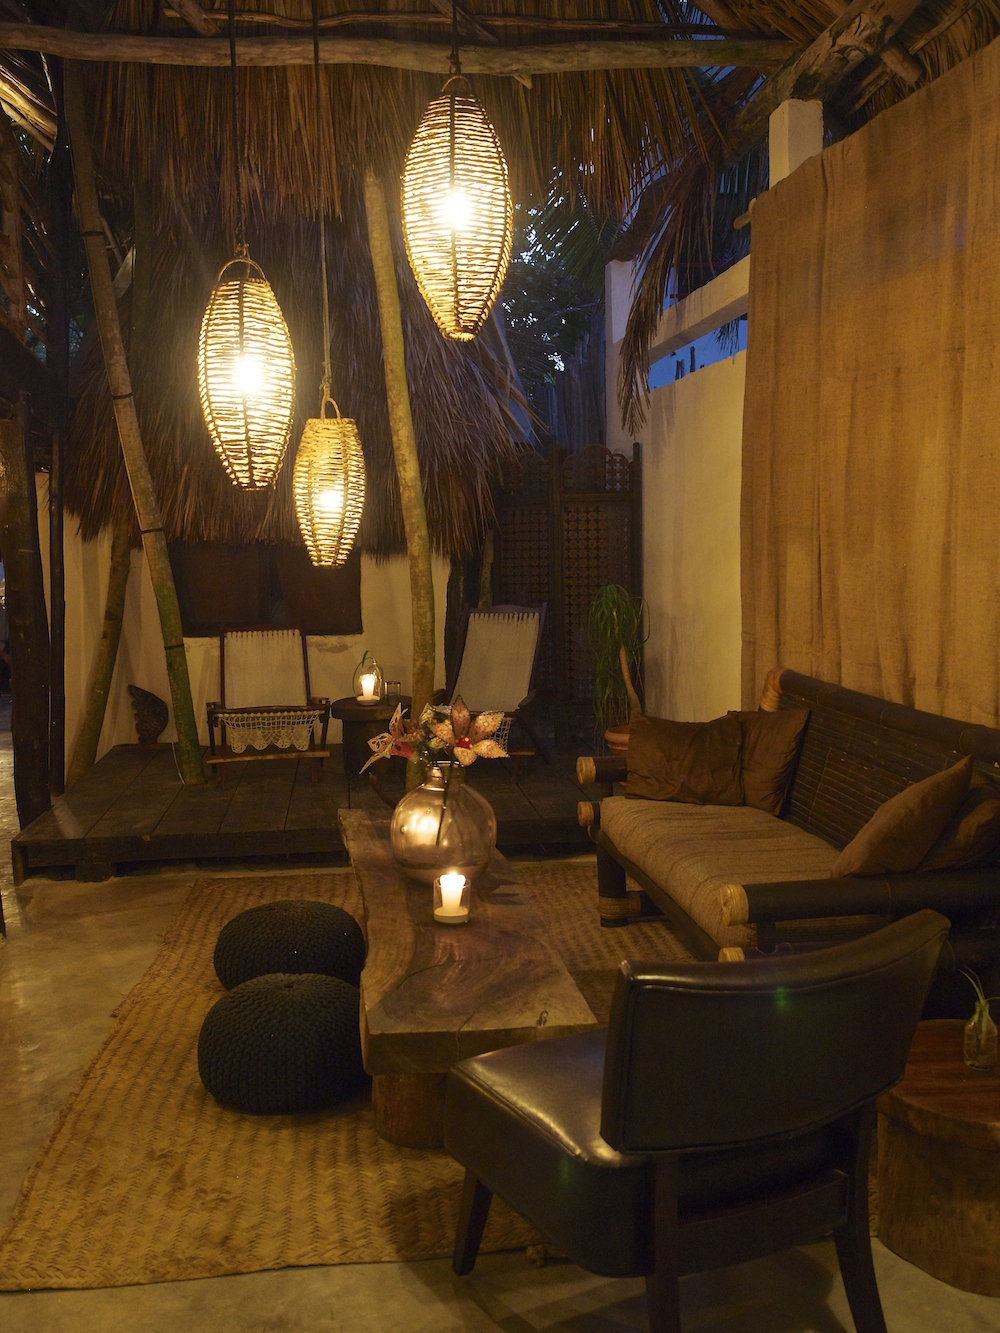 Evening at Utopia Tulum is just magical!